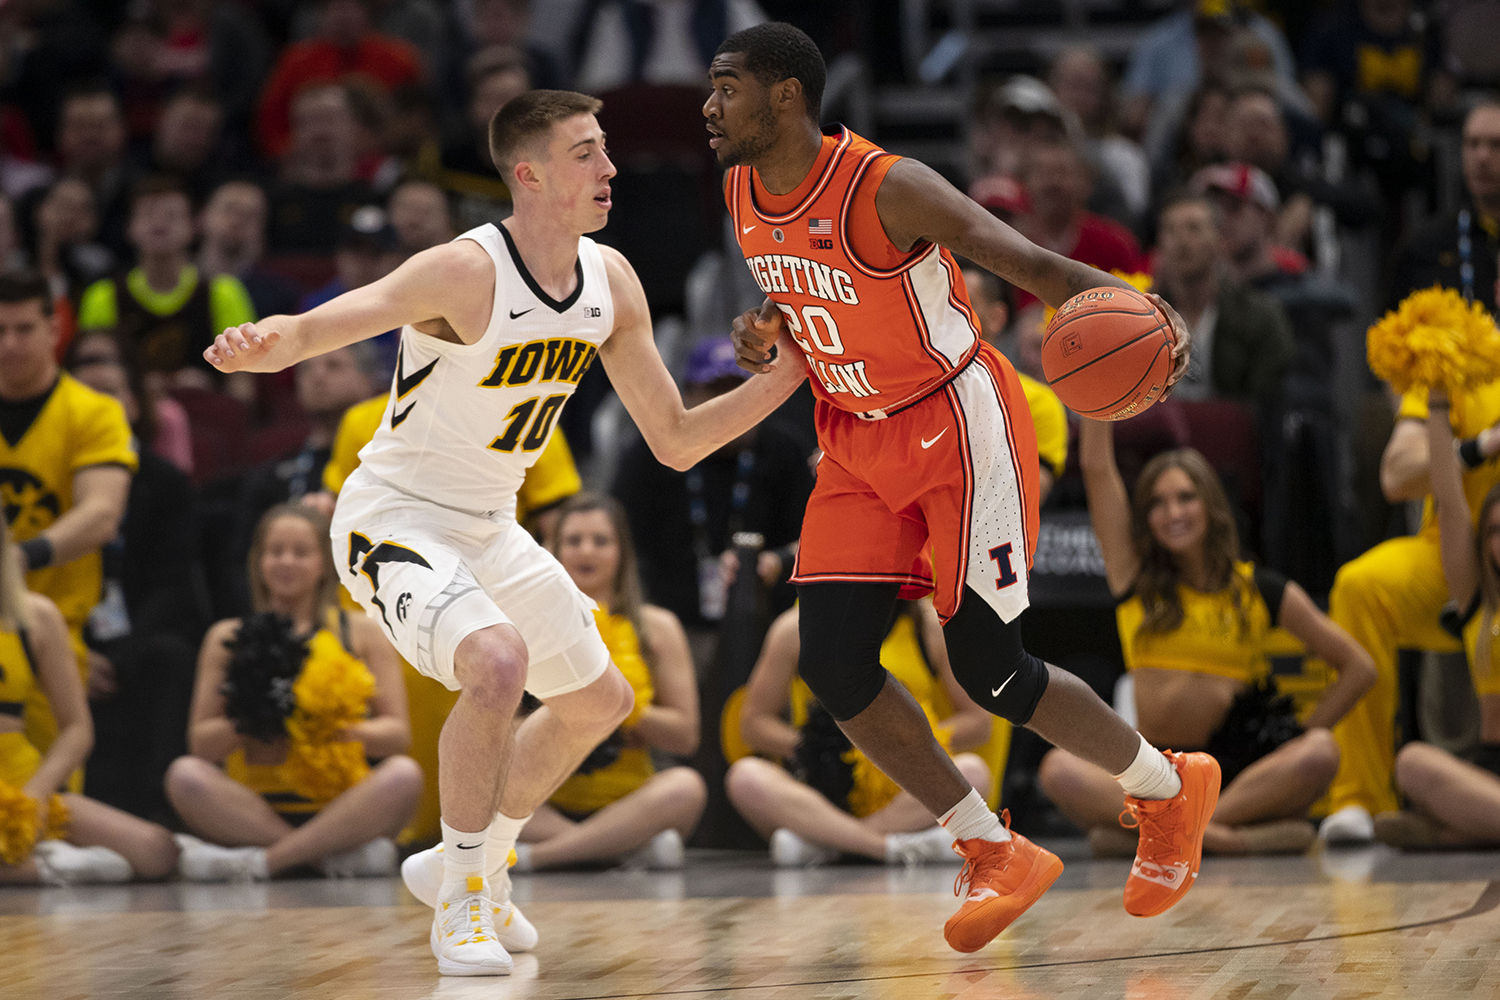 Iowa's Joe Wieskamp guards Illinois' Da'Monte Williams during the Iowa/Illinois Big Ten Tournament men's basketball game in the United Center in Chicago on Thursday, March 14, 2019. The Hawkeyes defeated the Fighting Illini, 83-62.